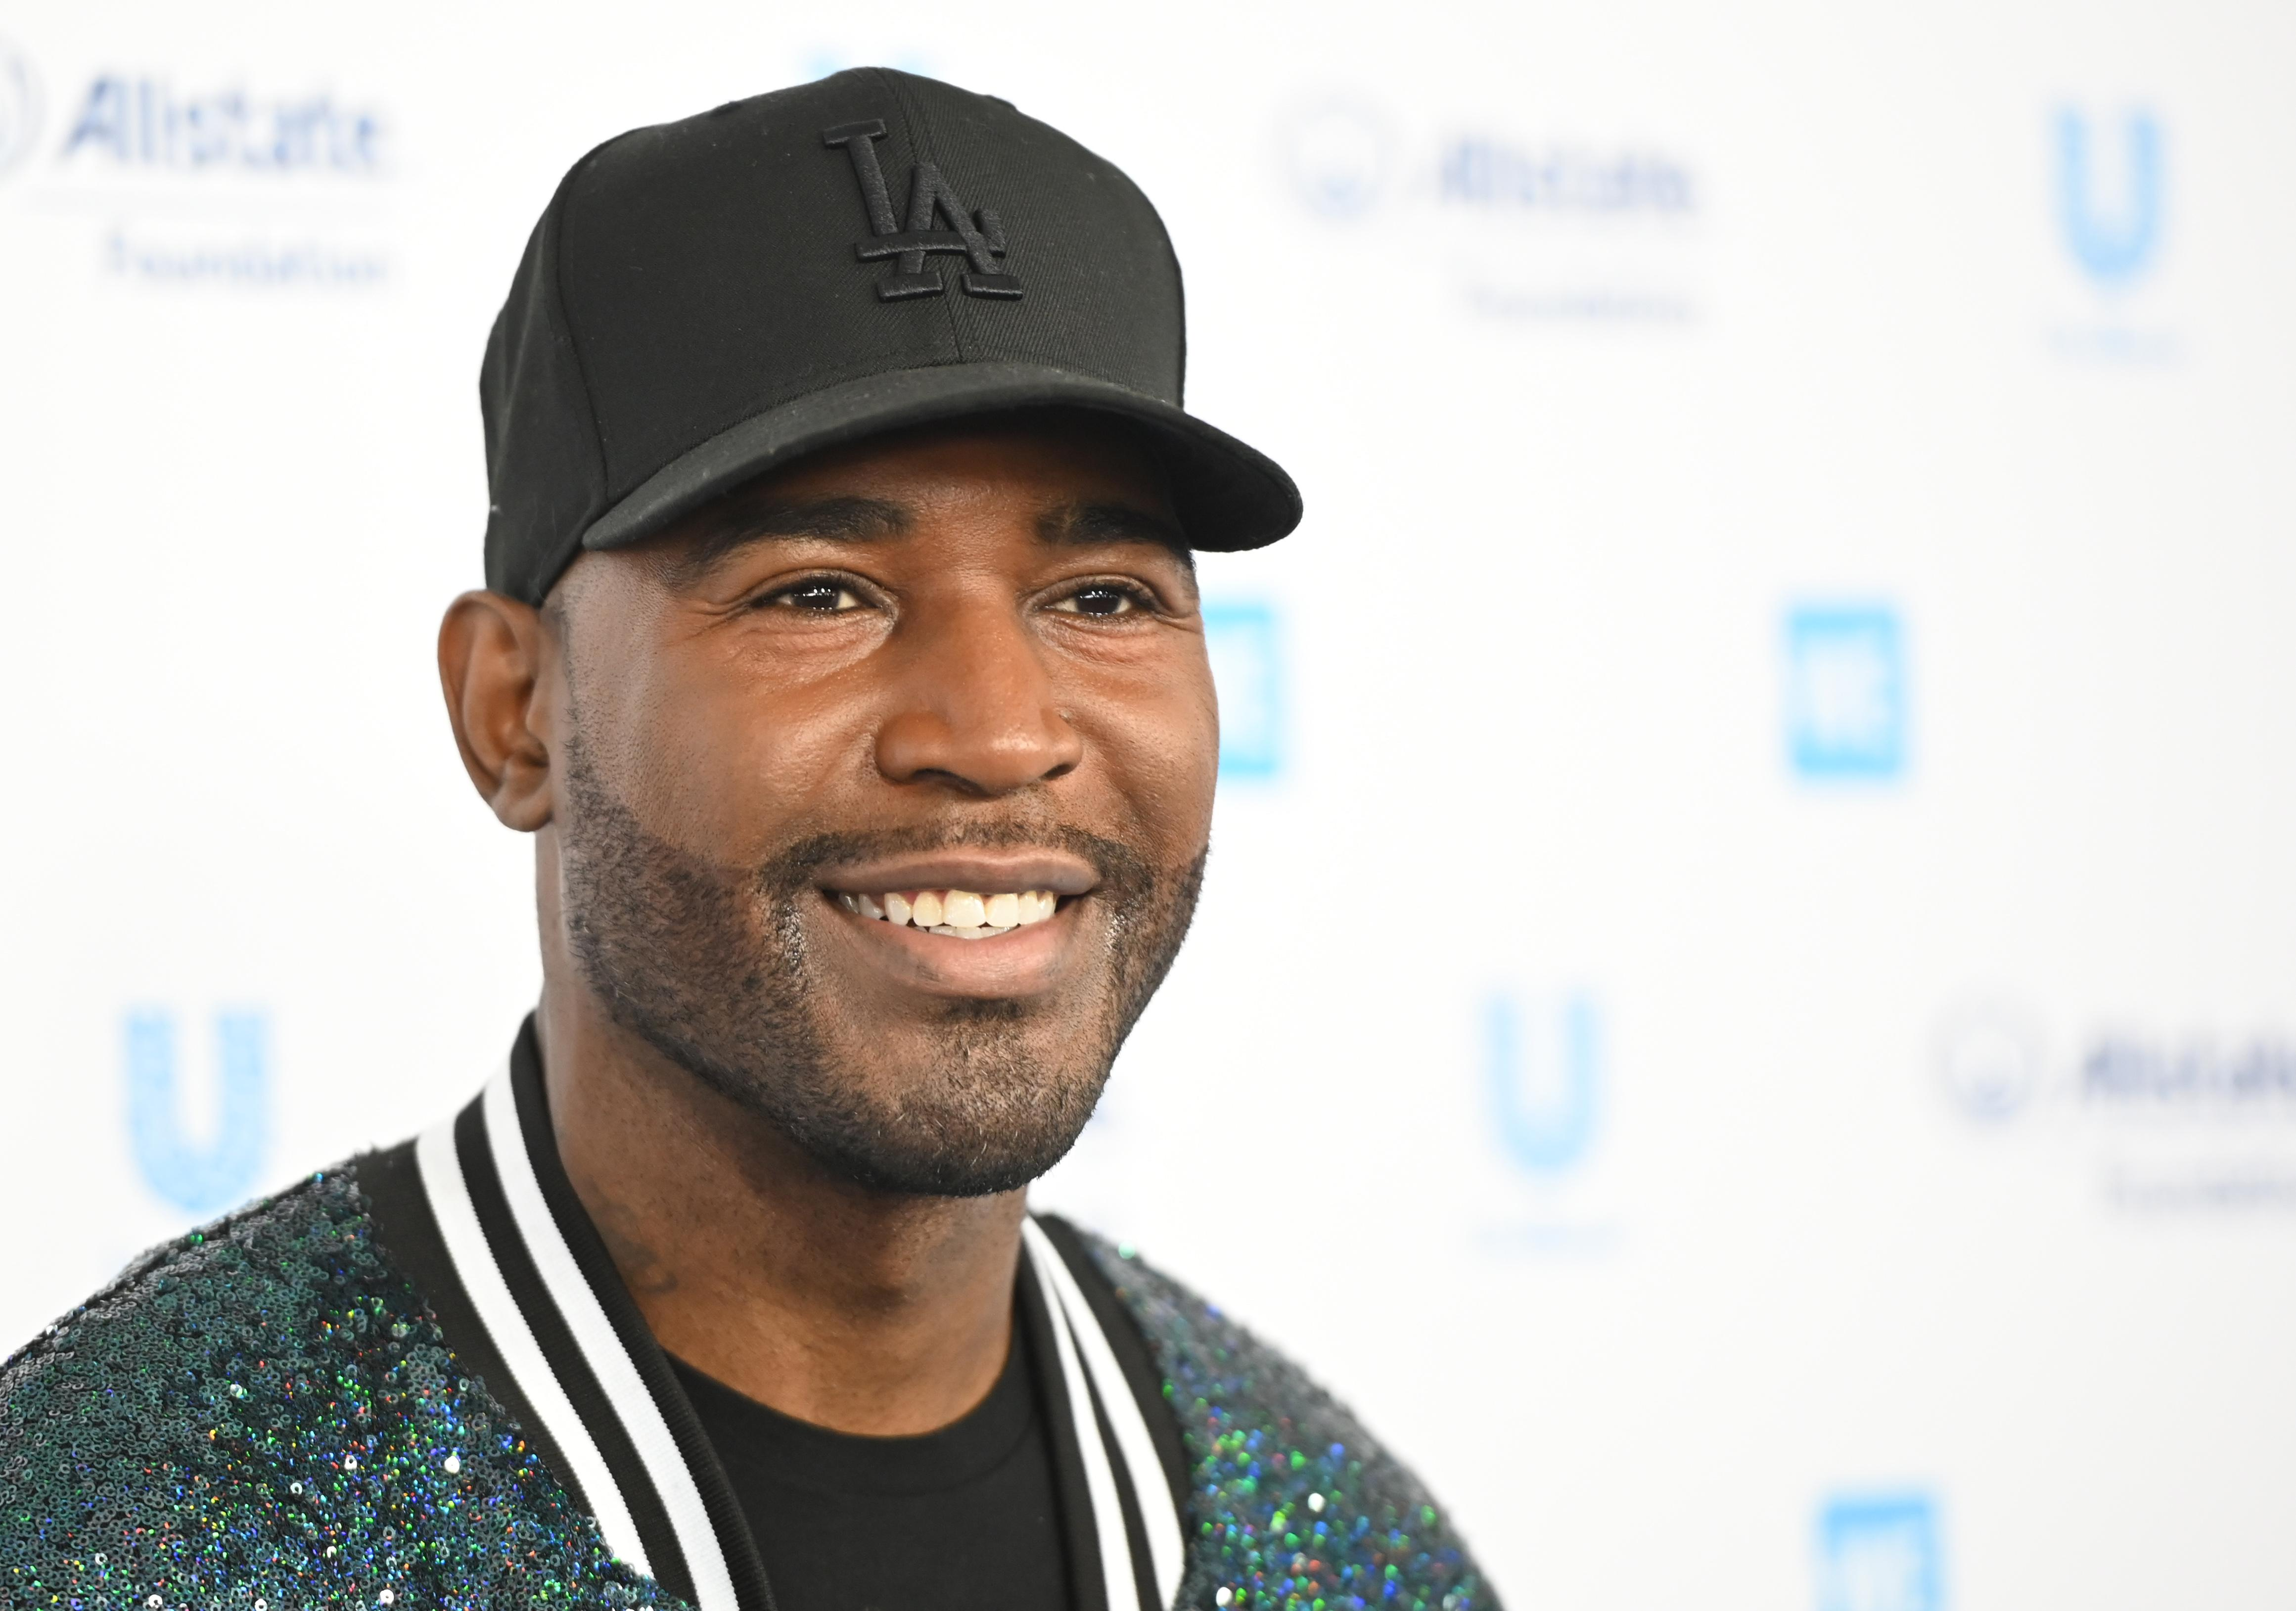 Queer Eye' star Karamo Brown under fire for defending 'good guy' Sean Spicer on 'DWTS': 'You sold out man'